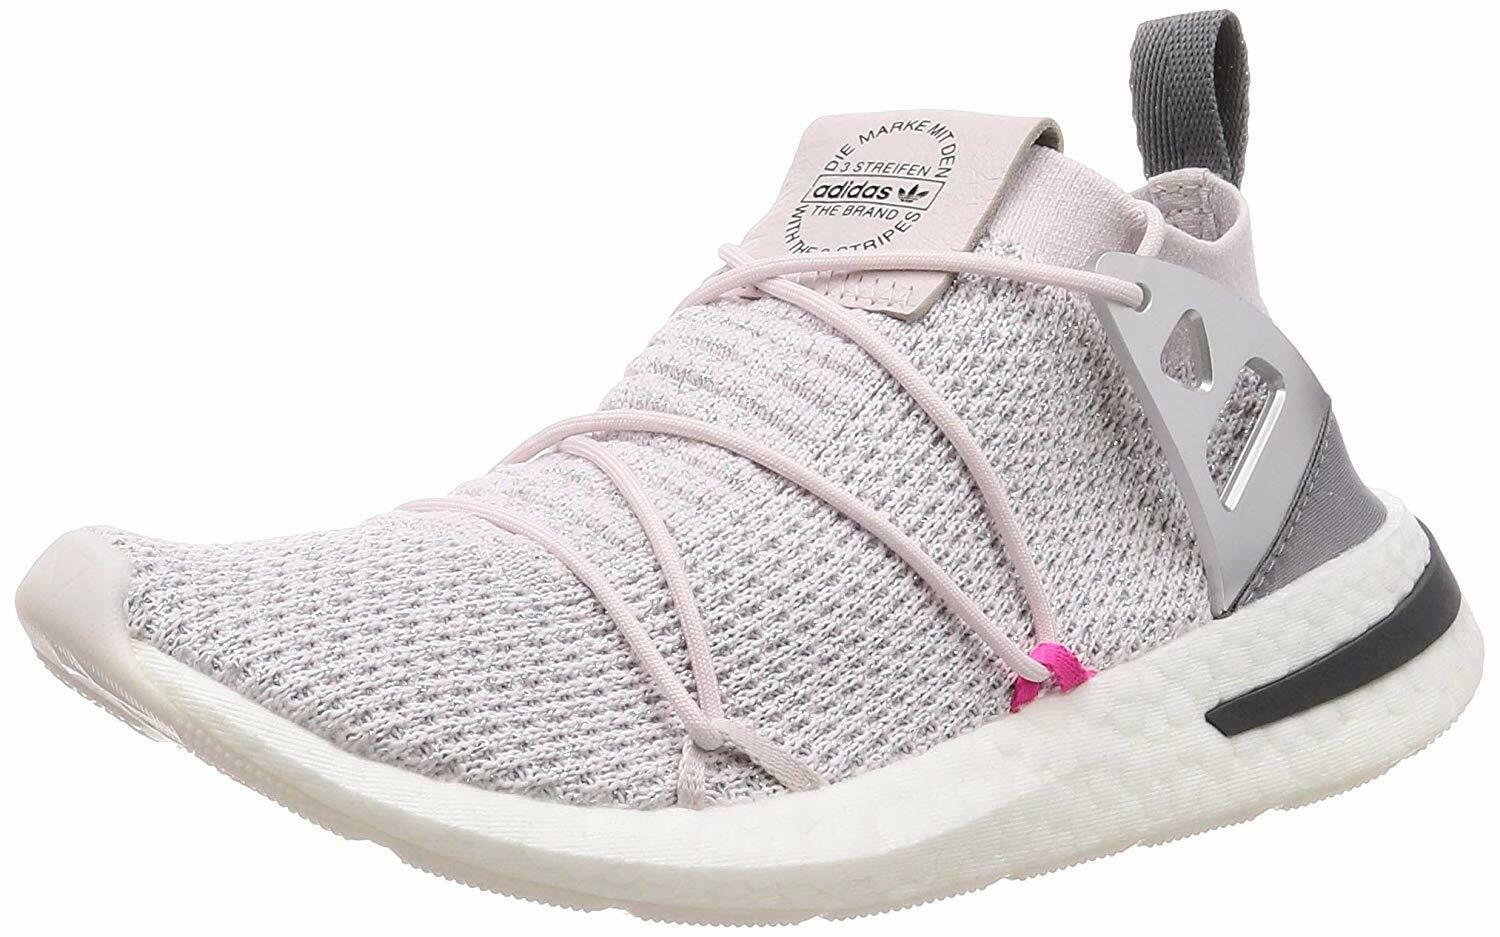 Adidas Arkyn  Primeknit  Women's Running/Trainer/Pink/Mesh(D96760)Size:US 9.5